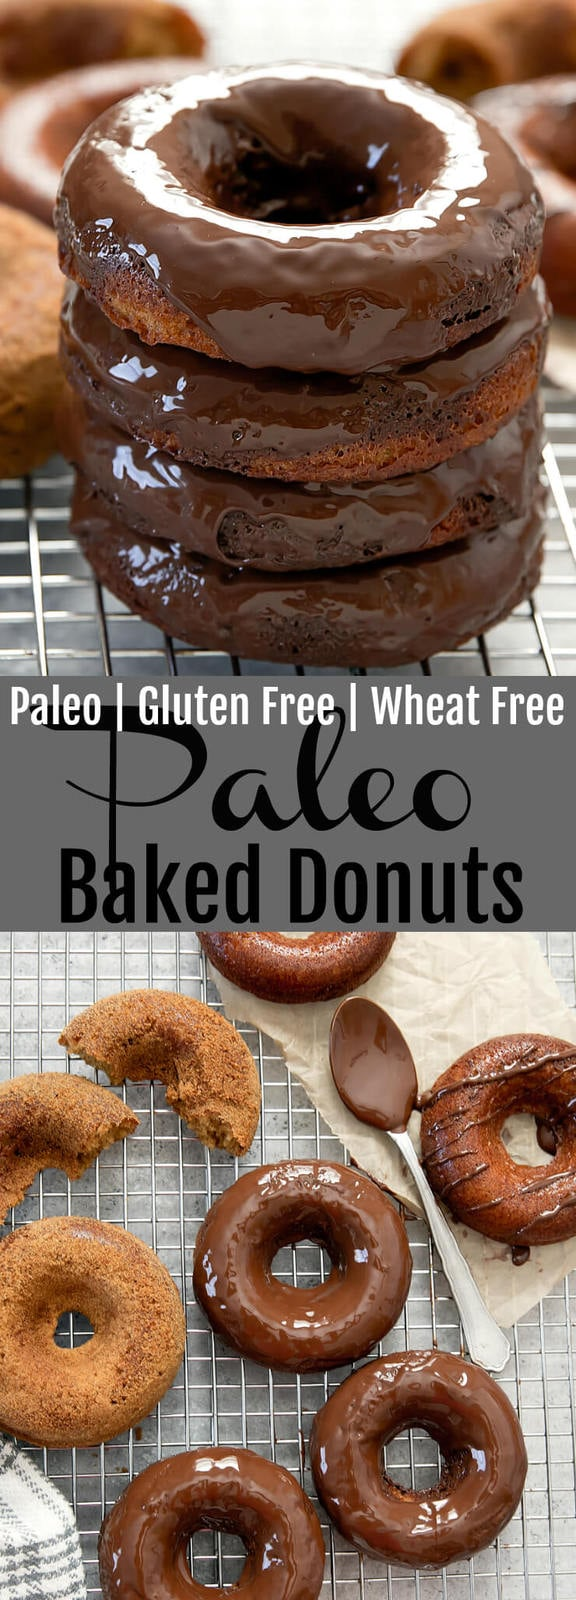 Paleo Baked Donuts. Super easy donuts with the most tender and light crumb. You won't believe they are wheat flour free and gluten free!  #paleo #glutenfree #donuts